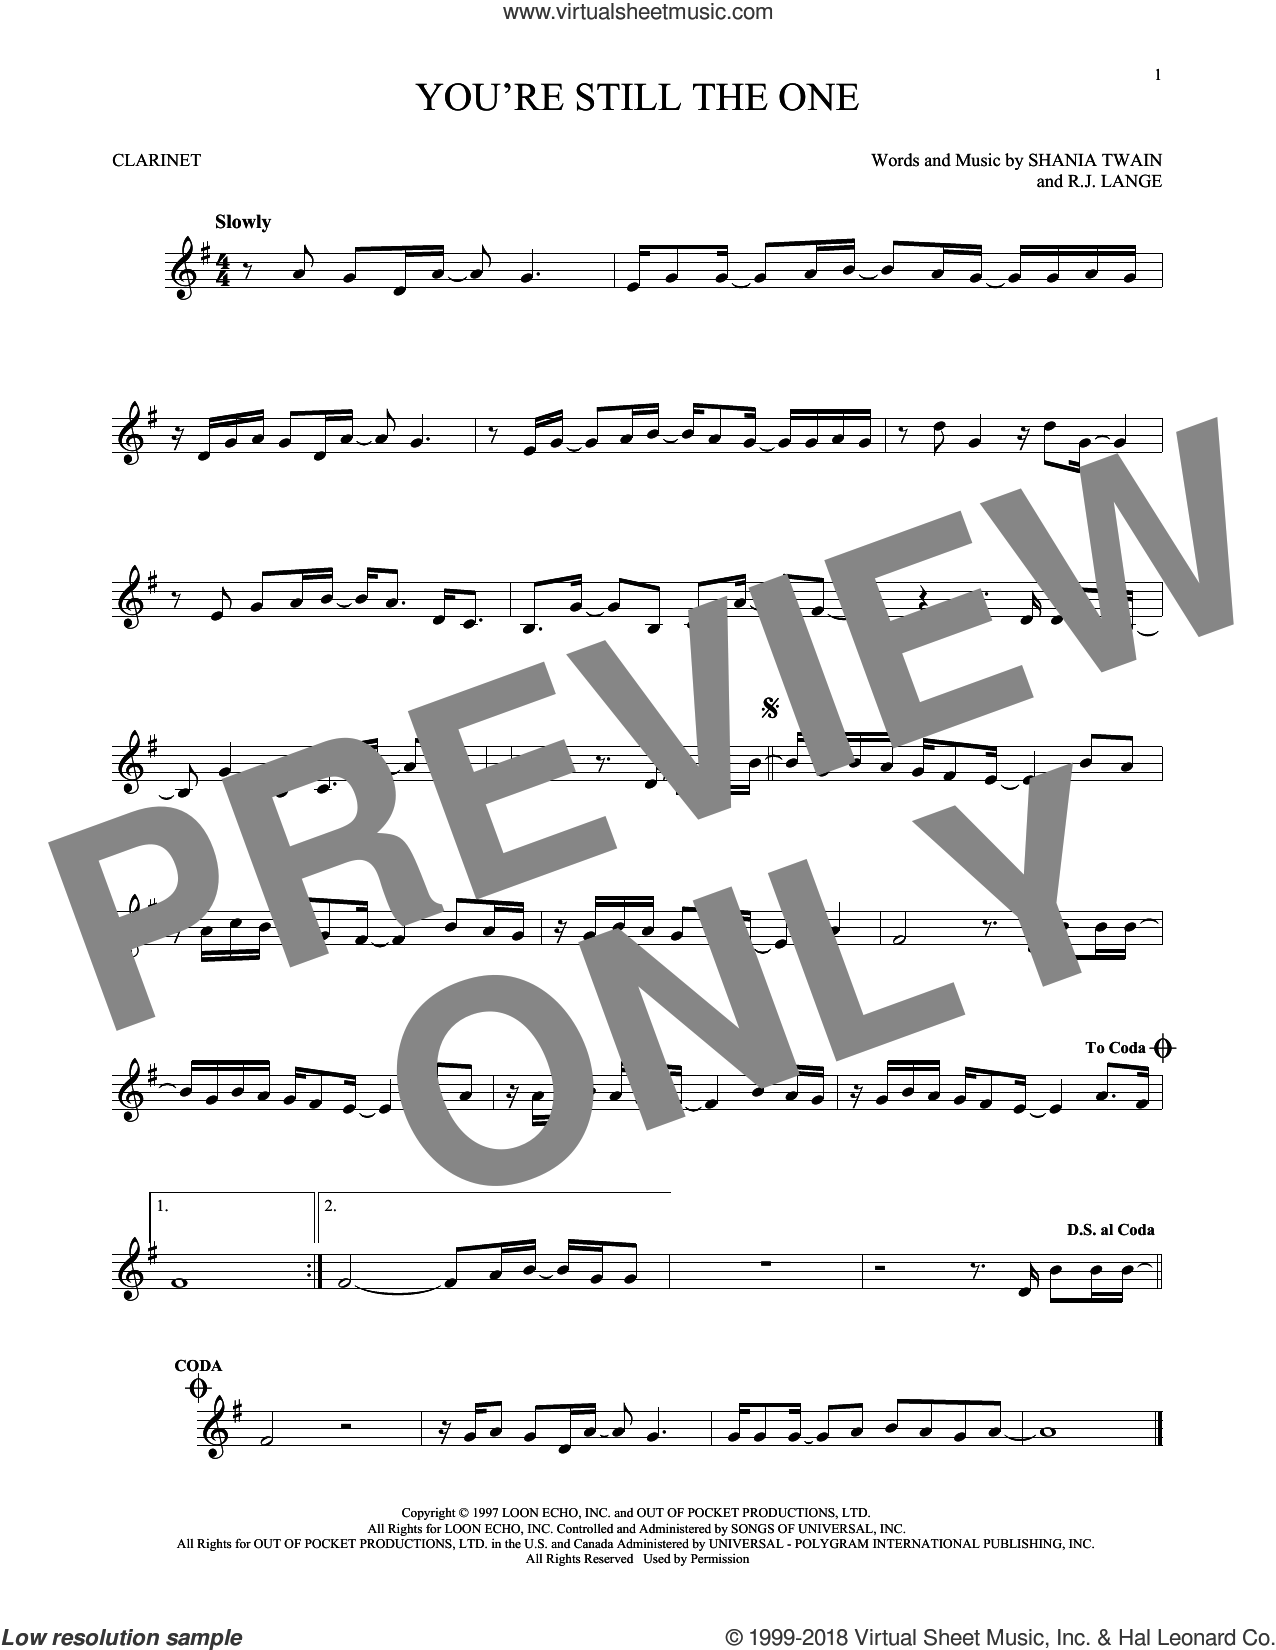 You're Still The One sheet music for clarinet solo by Shania Twain and Robert John Lange, intermediate skill level